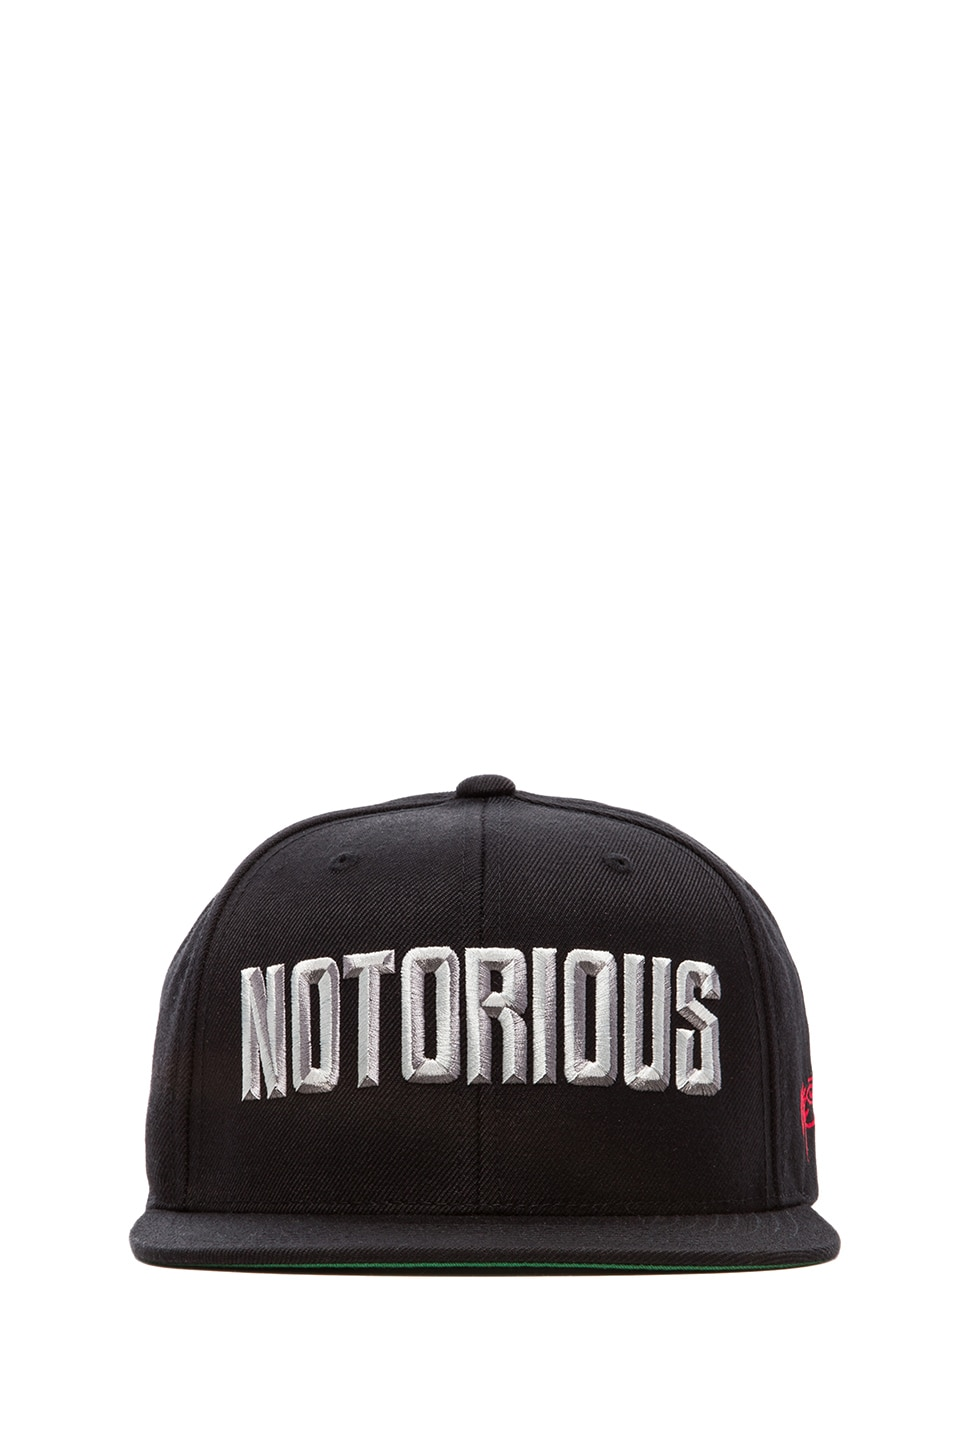 SSUR Notorious Snapback in Black